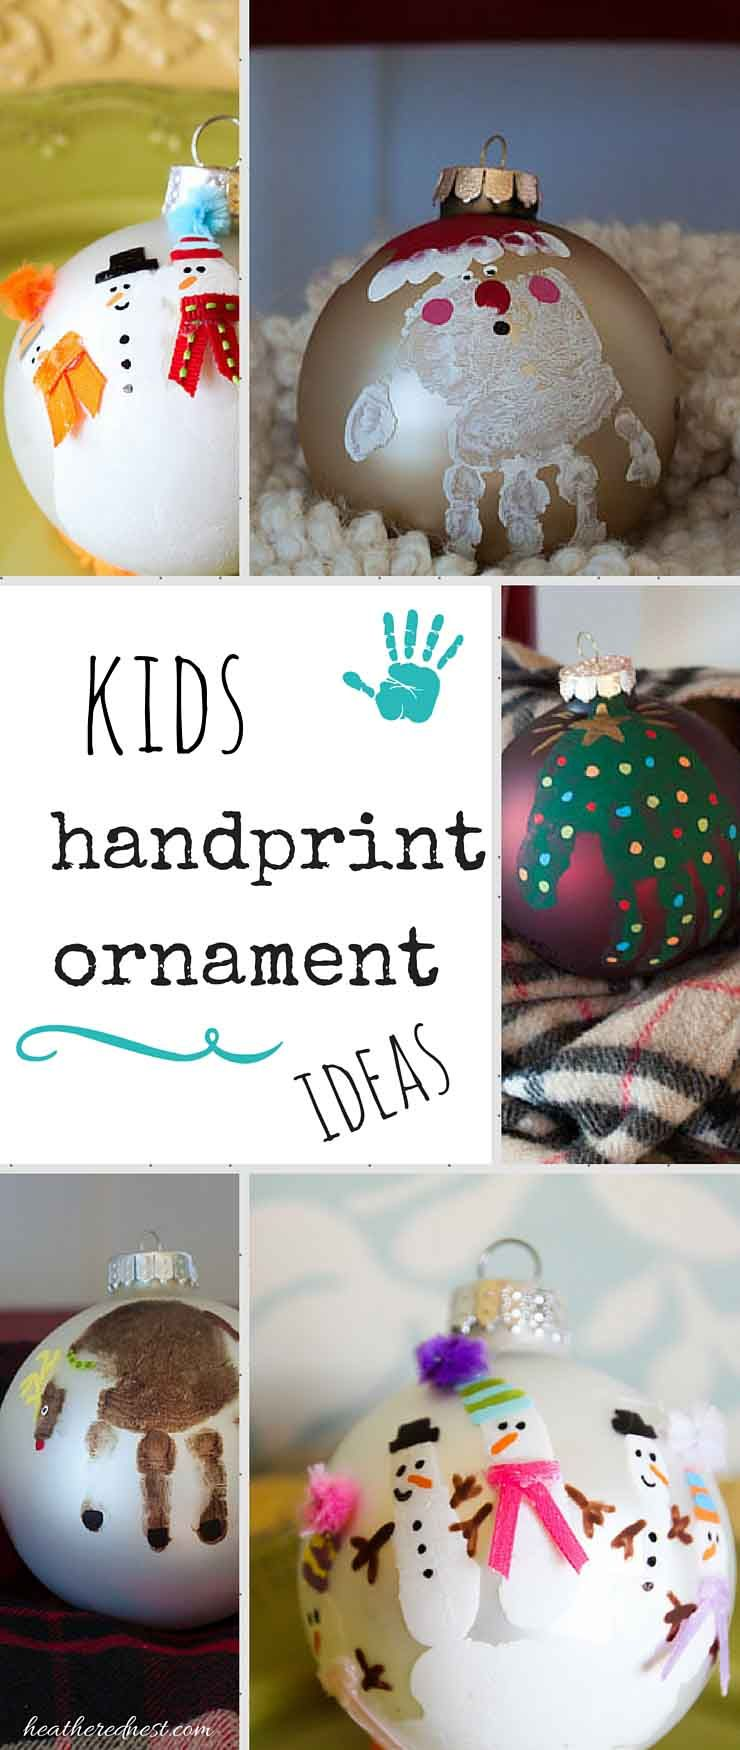 31 Days Of Handmade Christmas Ornaments Diy Kids Handprint Ornaments Christmas Ornaments Diy Kids Ornaments Diy Kids Diy Christmas Ornaments